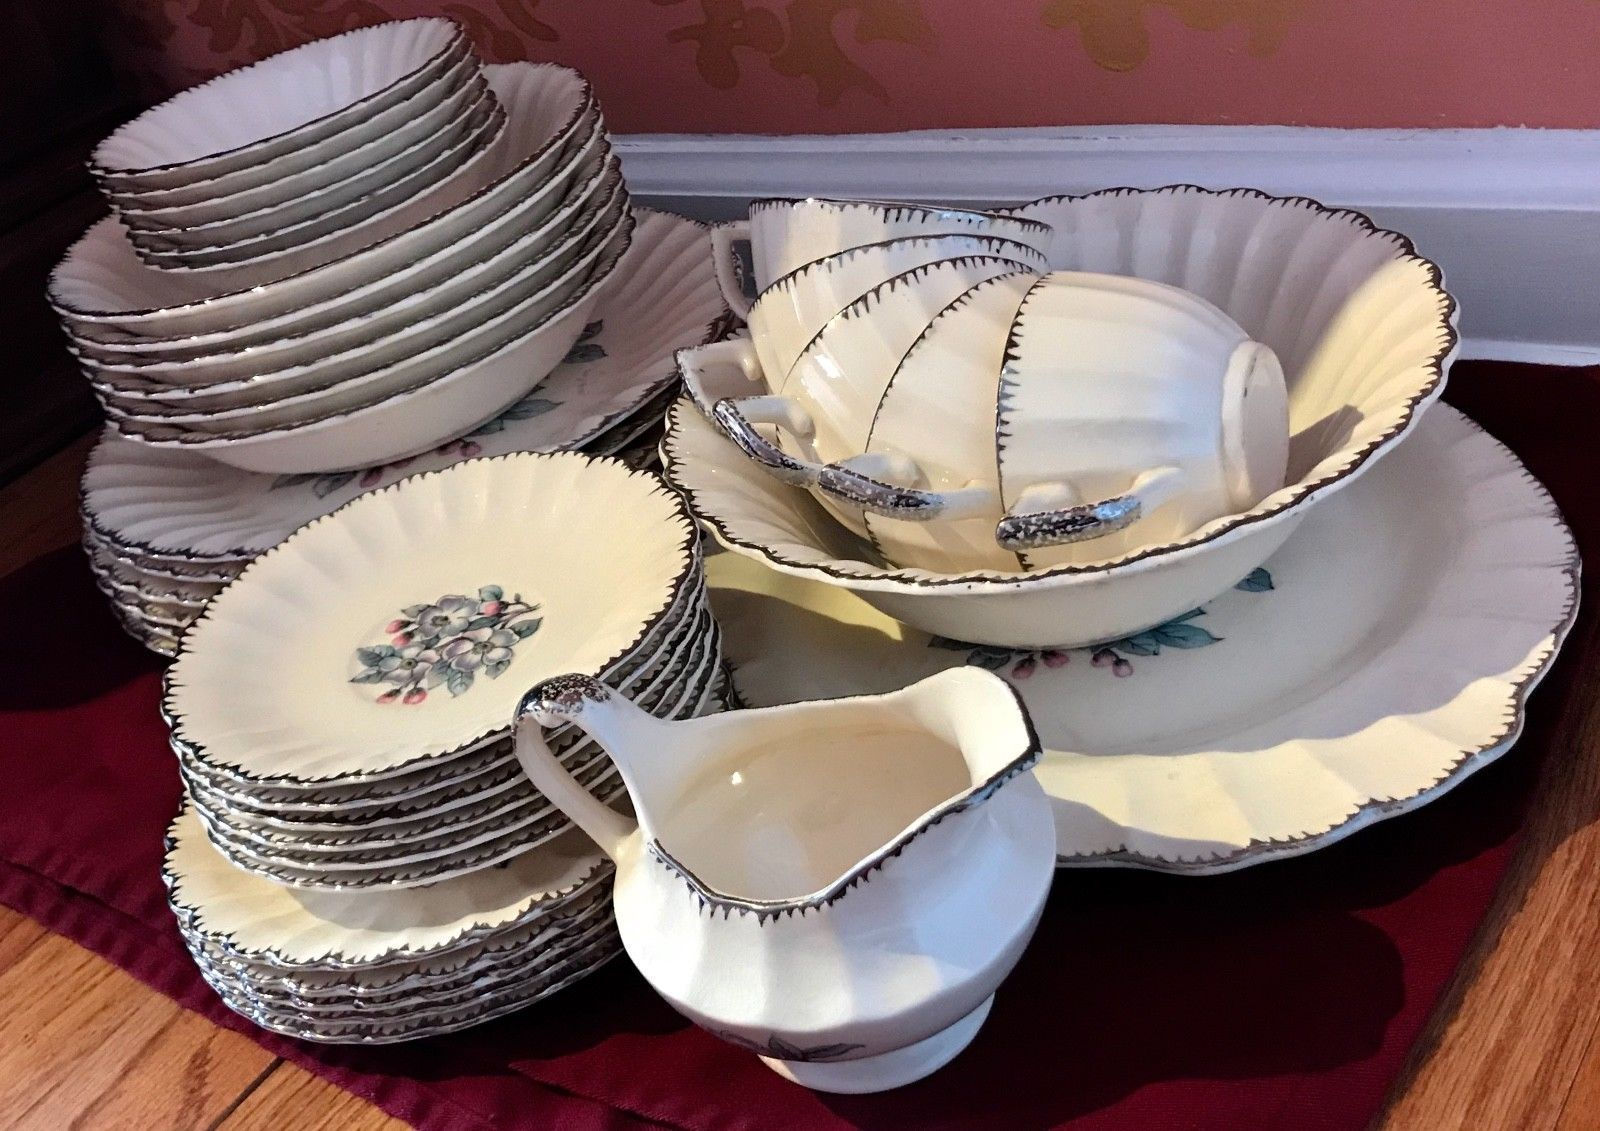 Pre-1950u0027s American Limoges Dinnerware Set with Silver plated Silverware & Pre-1950u0027s American Limoges Dinnerware Set with Silver plated ...